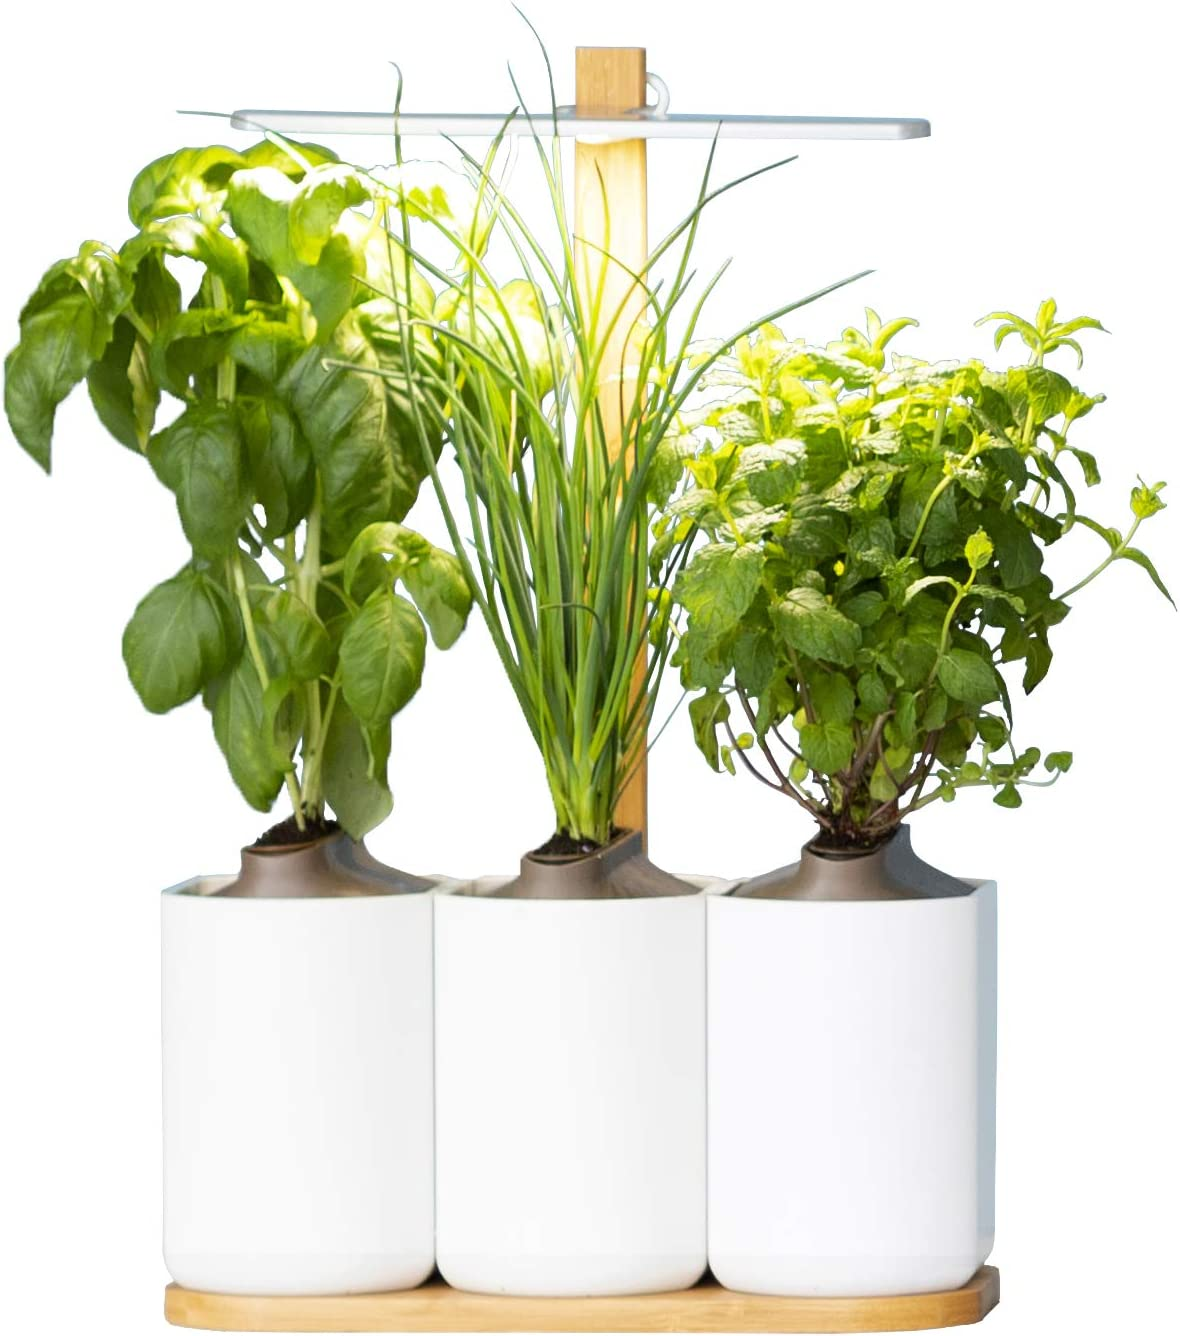 Prêt à Pousser Lilo, your Indoor Garden ❃ Grow your own fresh herbs at  home, easy and all year round ❃ Including Basil, Mint and Chives